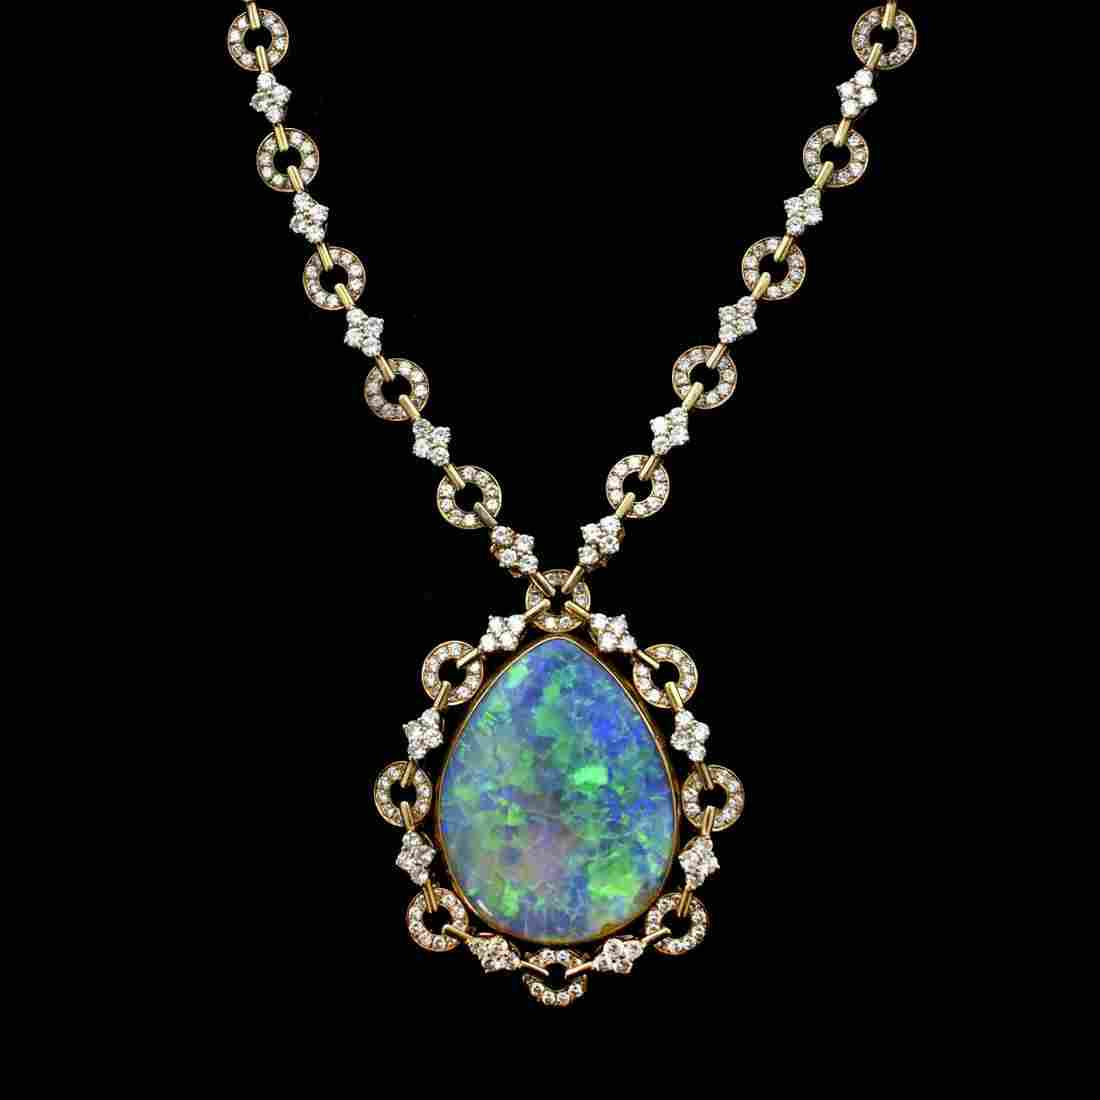 Stunning Black Opal, Diamond and 18K Necklace